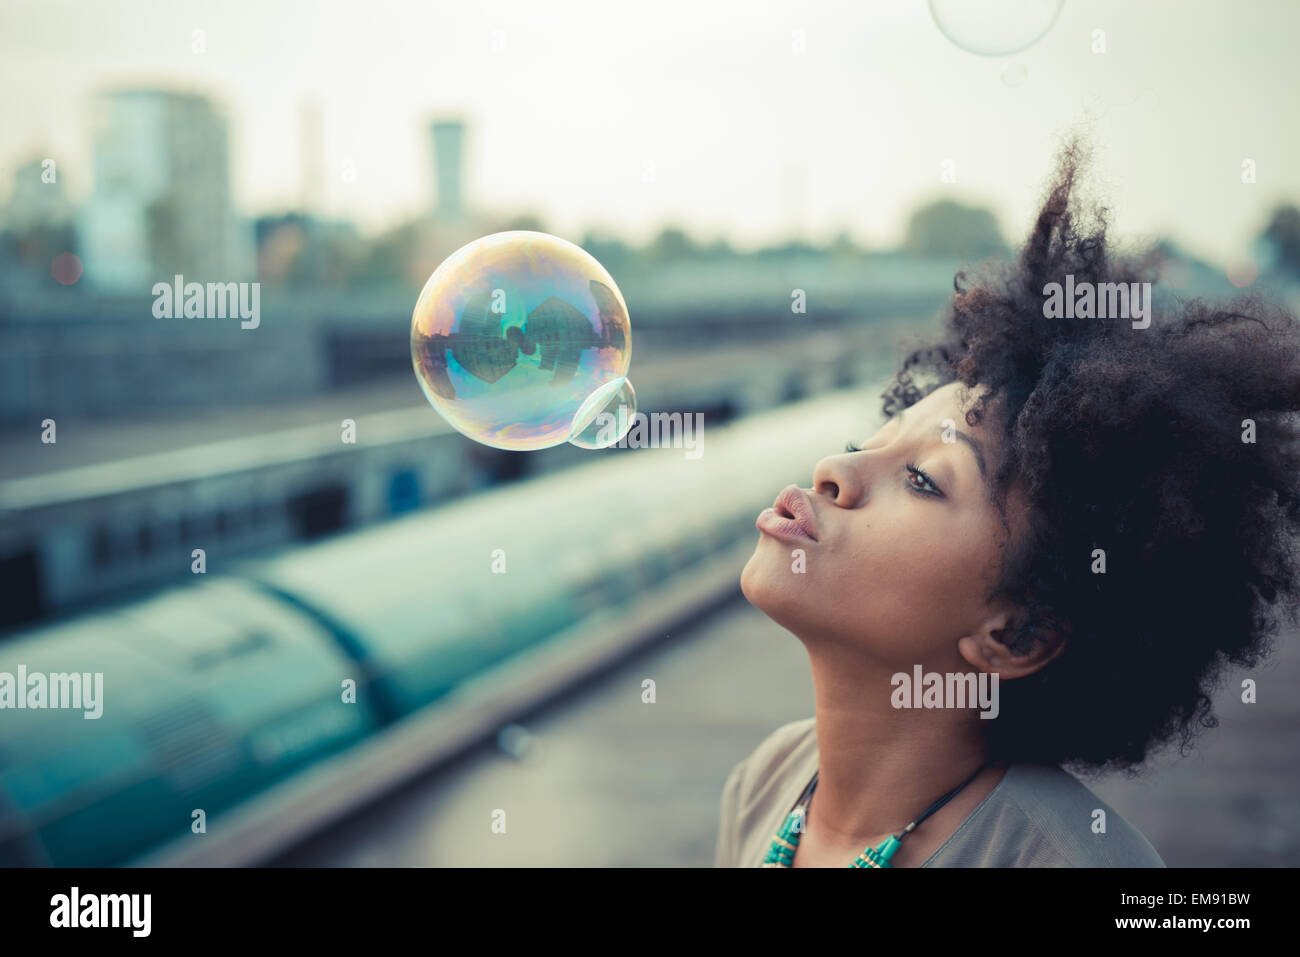 Young woman blowing bubbles in city industrial area - Stock Image